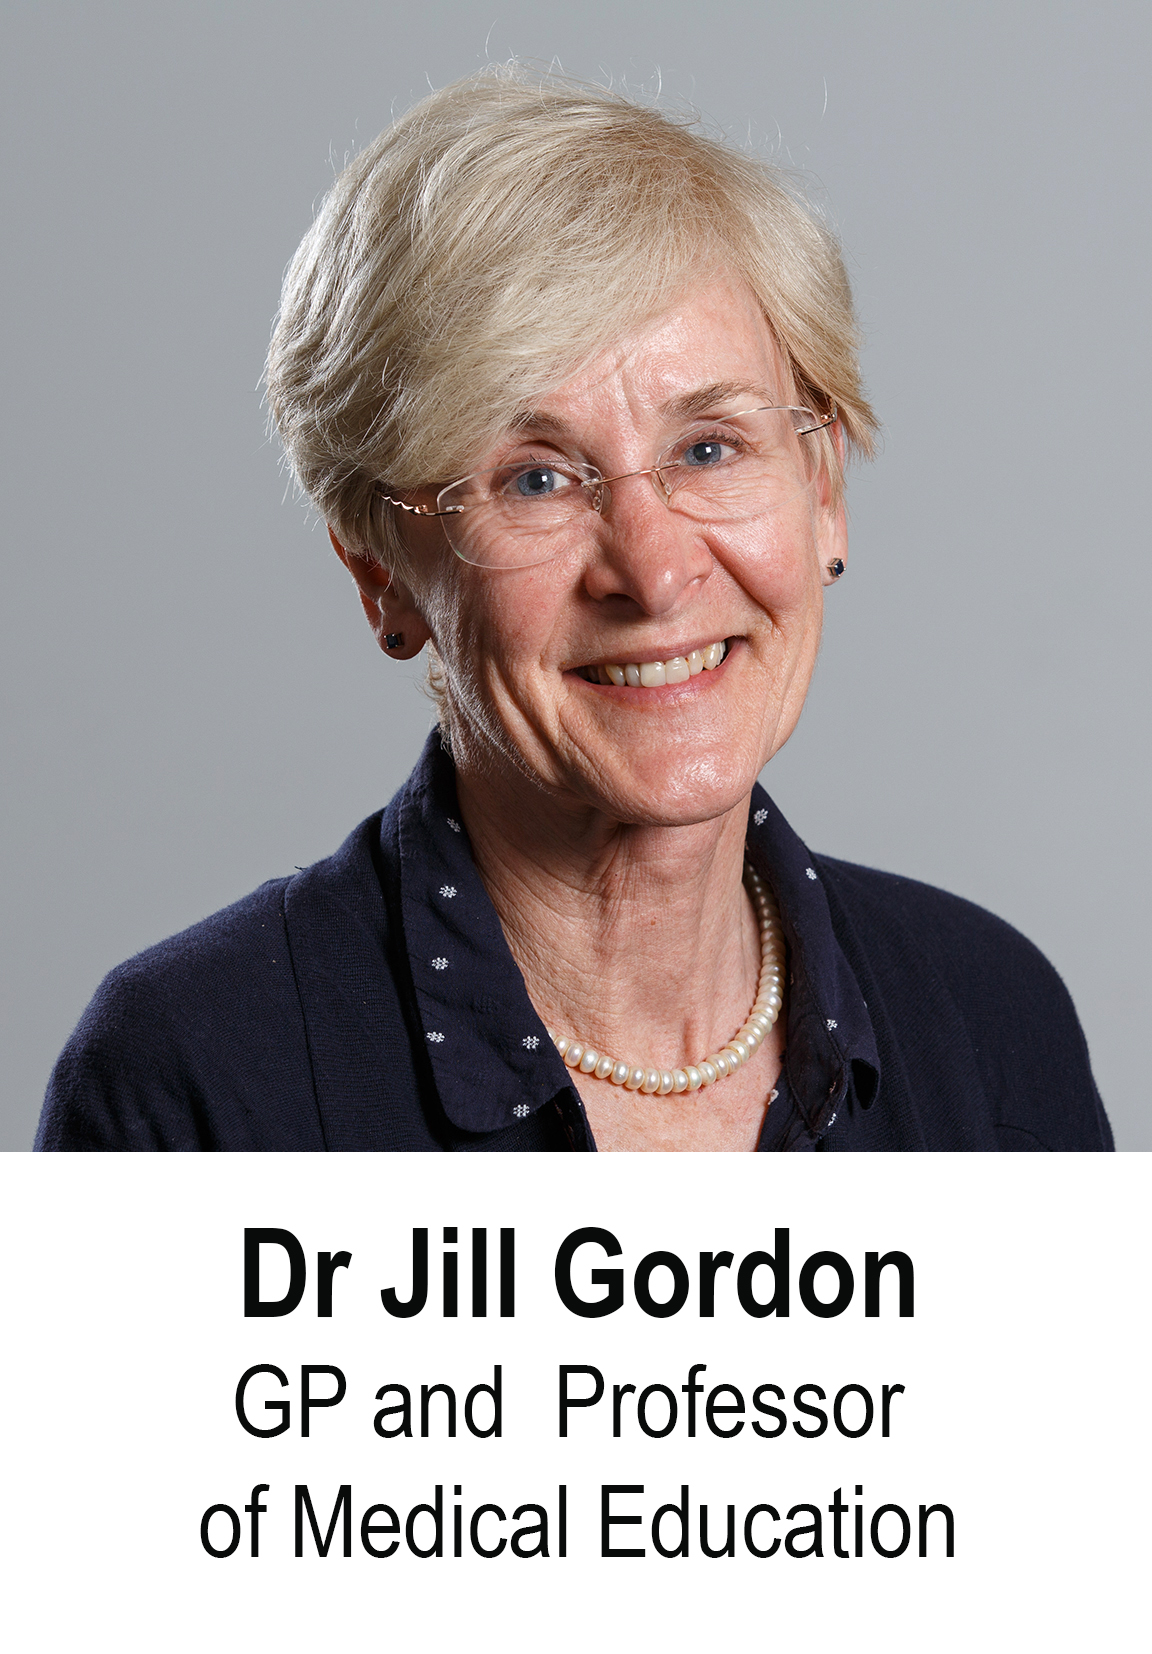 jill_gordon_picture_and_text.jpg